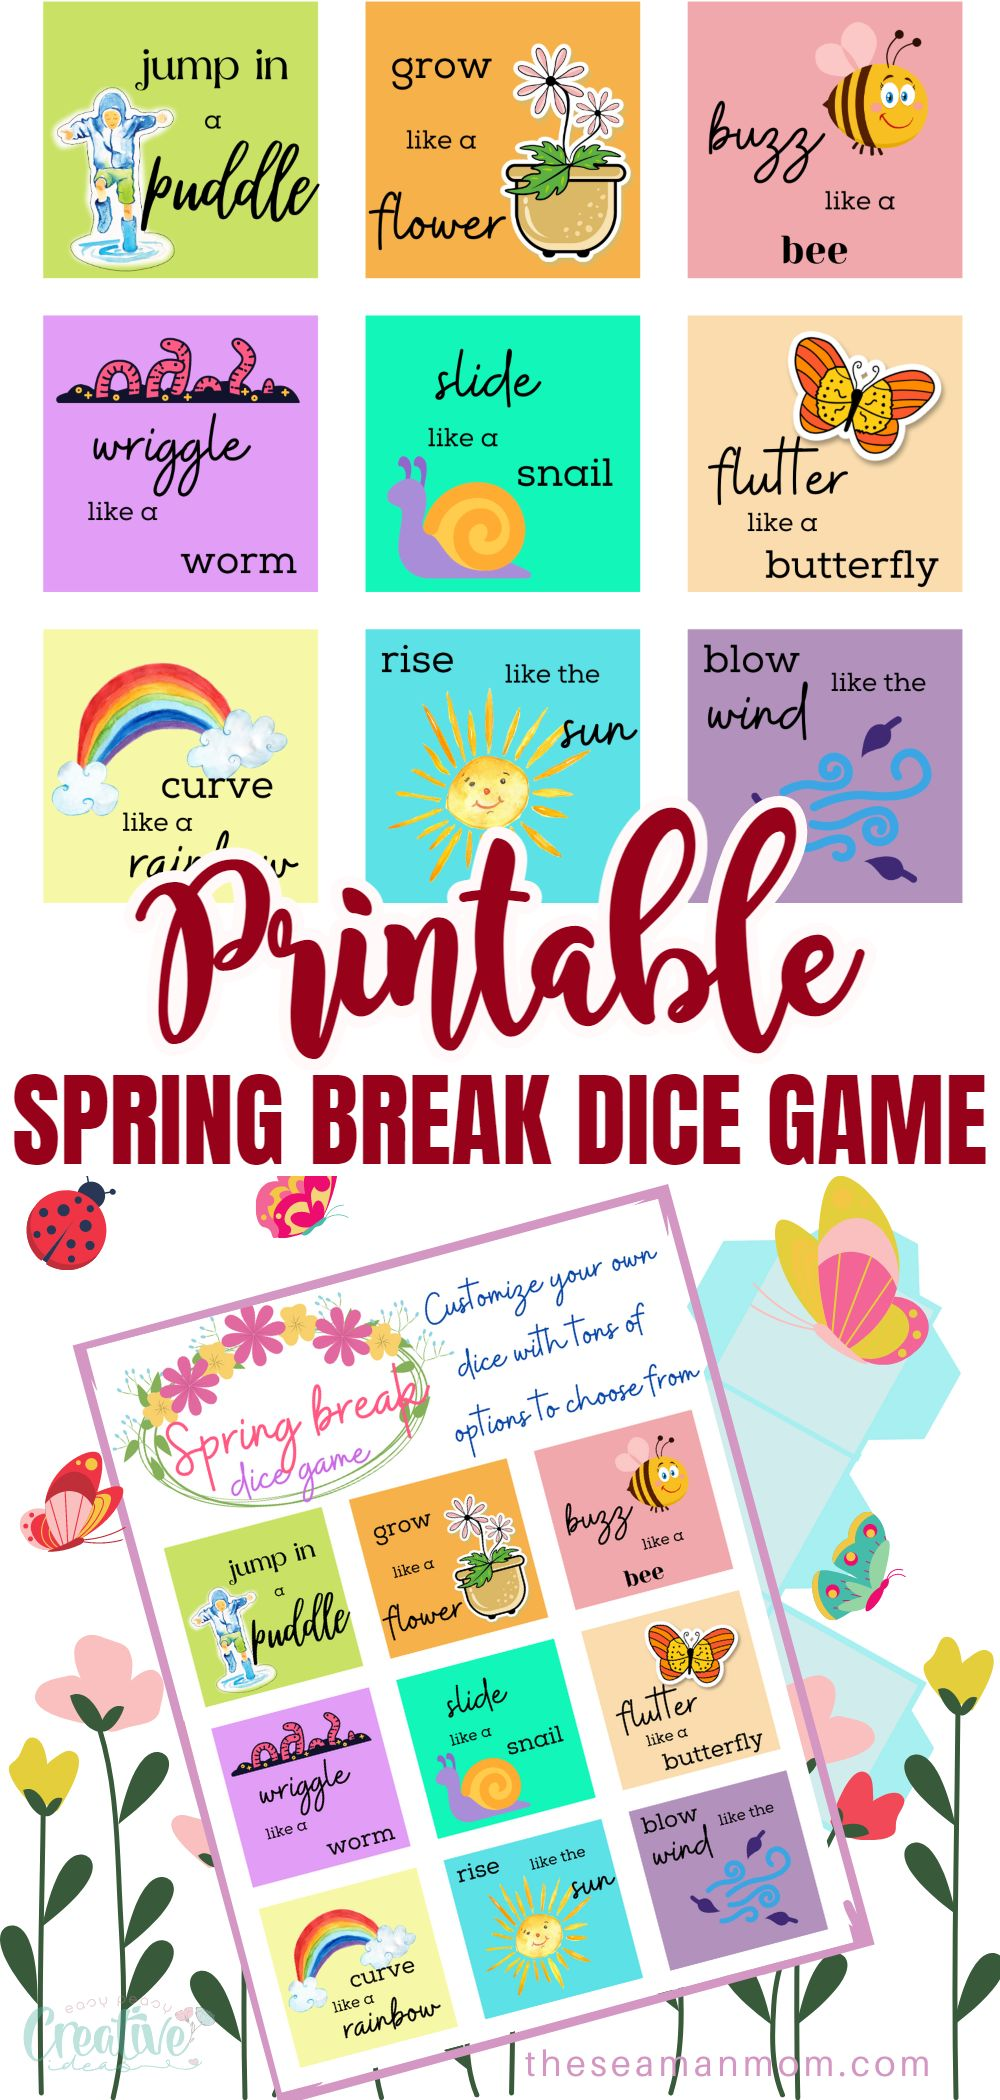 Spring break is the perfect time to relax and enjoy some quality time with your family. With this easy printable spring break dice game, you can get your kids up and moving while also having tons of fun. via @petroneagu